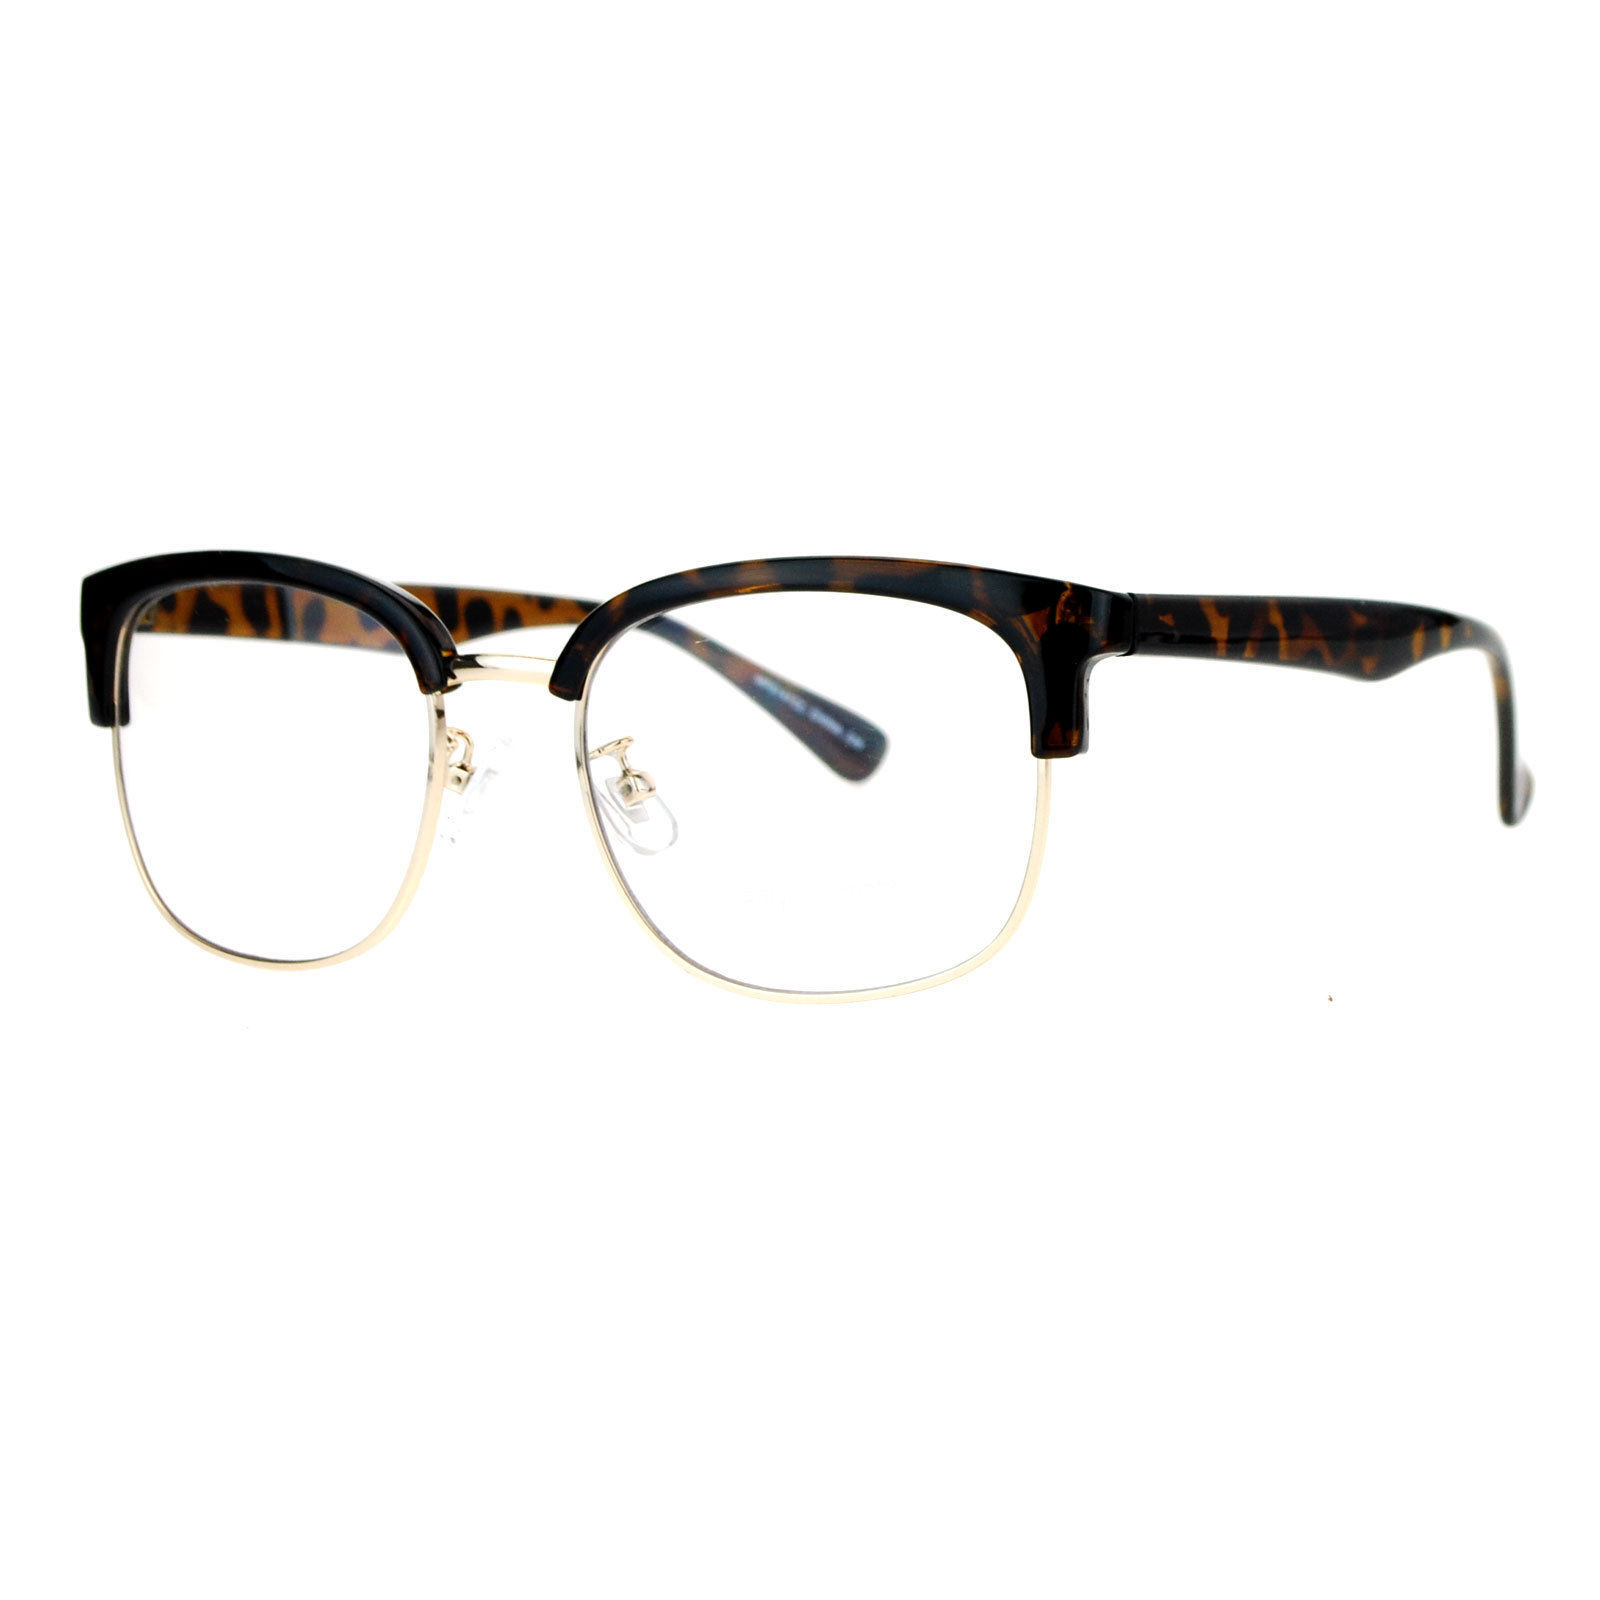 Designer Fashion Clear Lens Glasses Unisex Square Rectangular Eyeglasses